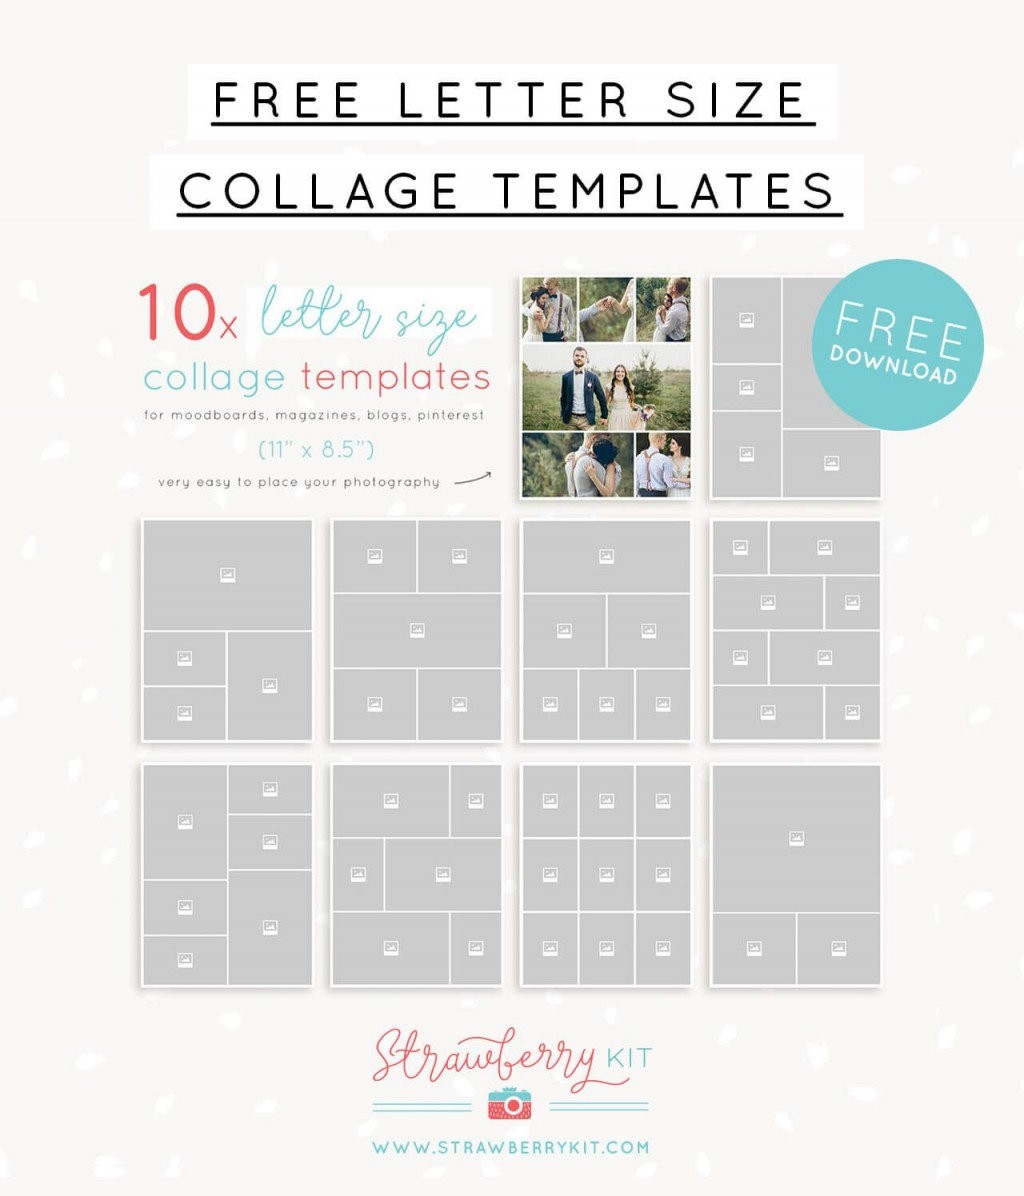 004 Fantastic Free Photo Collage Template Psd Highest Quality  Photoshop Download Heart Shaped For ElementLarge